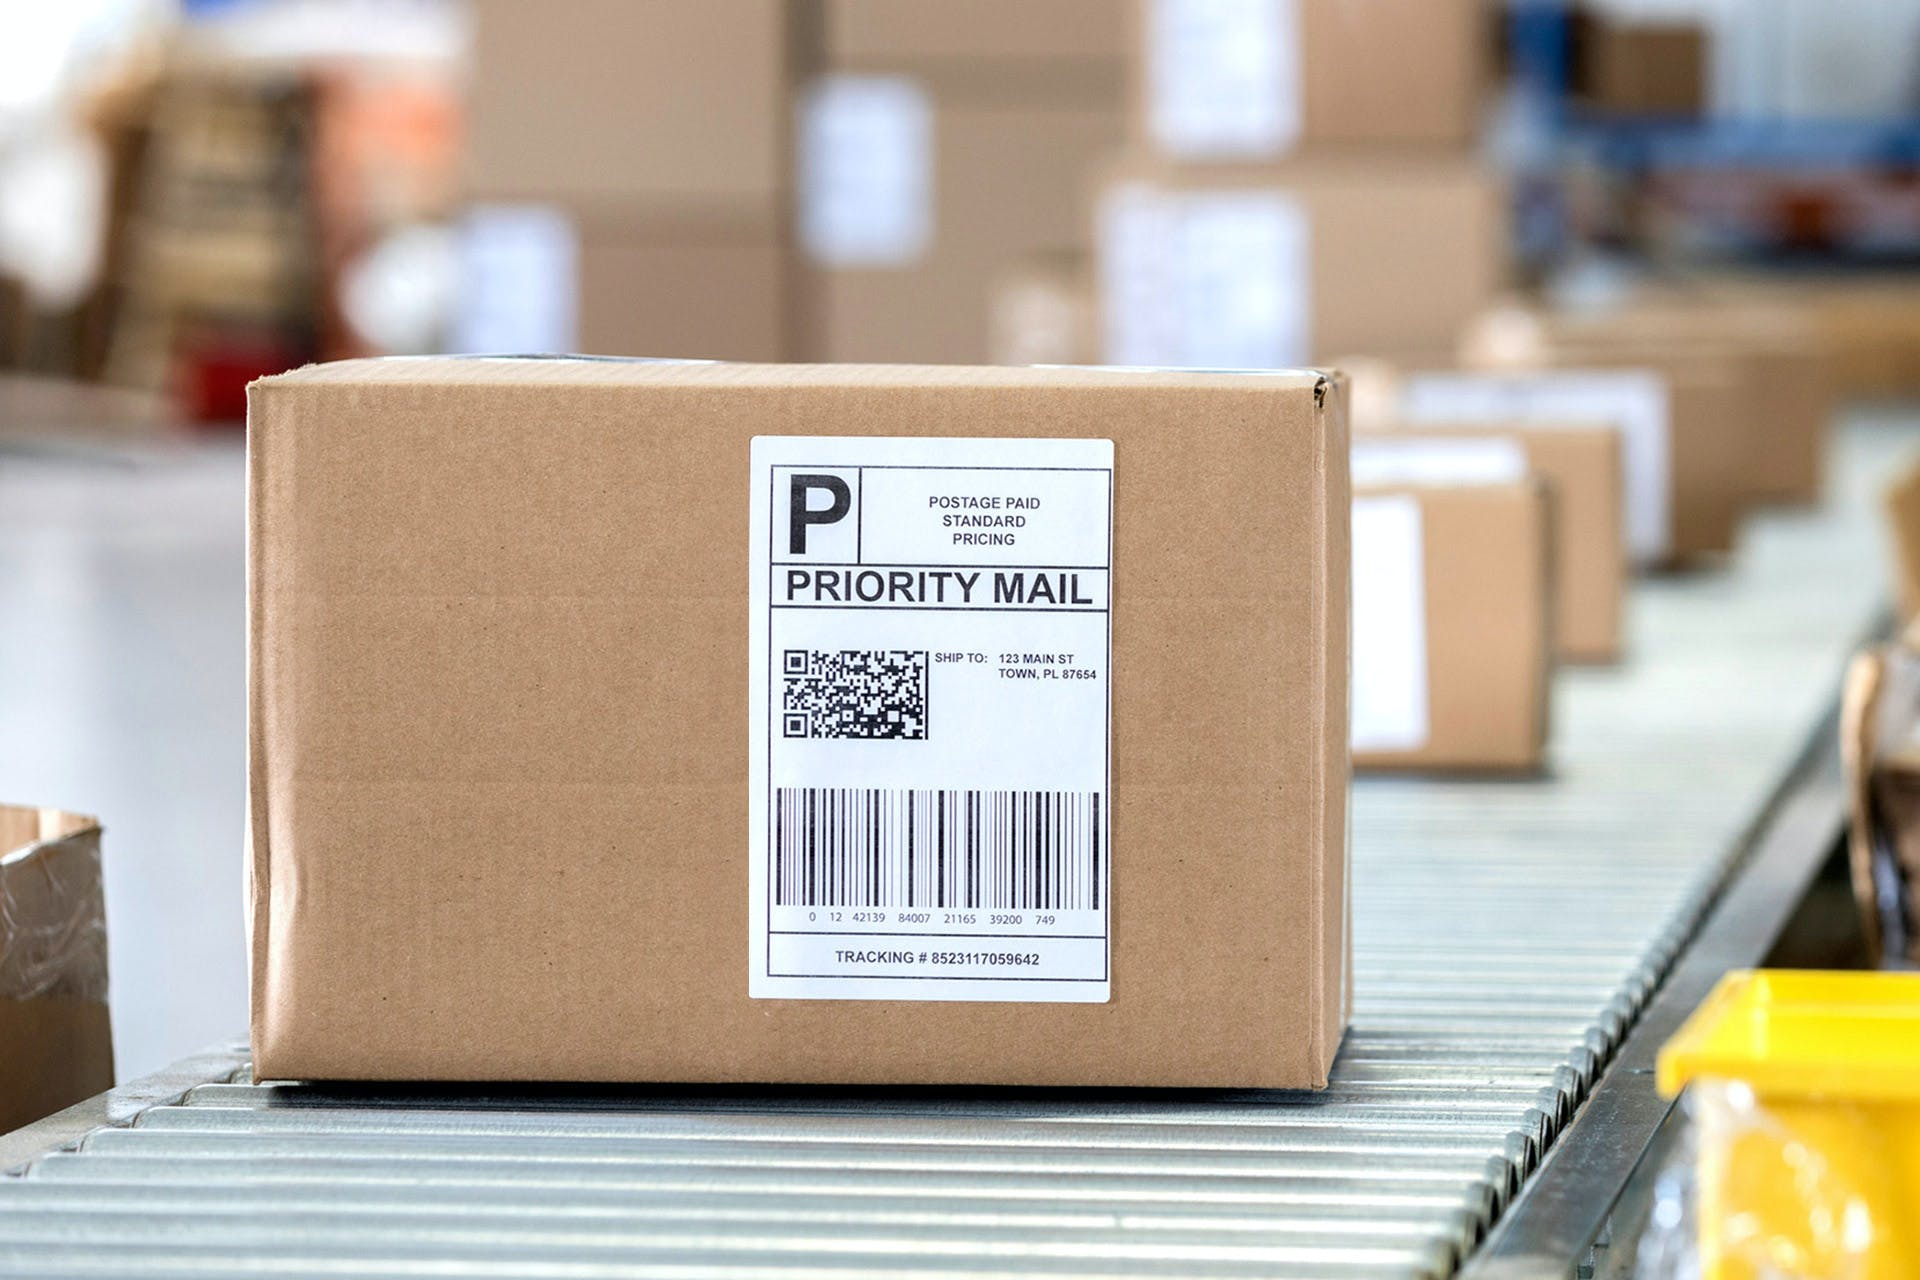 A package with address label on a conveyor belt.